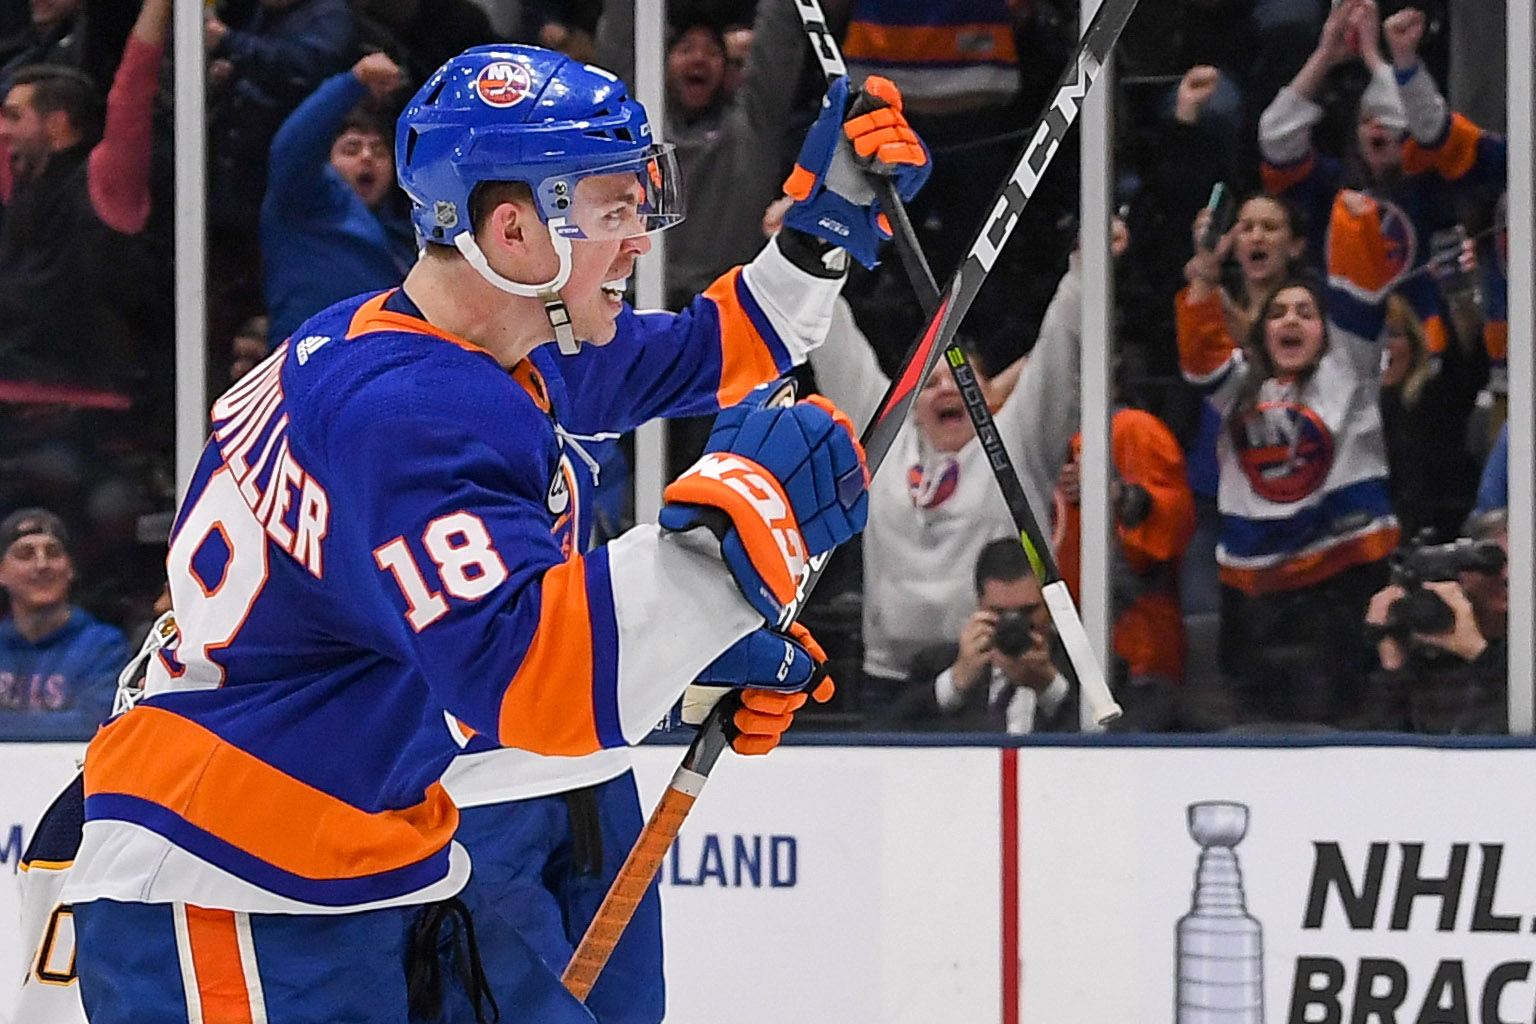 Mar 30, 2019; Uniondale, NY, USA; New York Islanders left wing Anthony Beauvillier (18) celebrates his goal against the Buffalo Sabres during the second period at Nassau Veterans Memorial Coliseum. Mandatory Credit: Dennis Schneidler-USA TODAY Sports